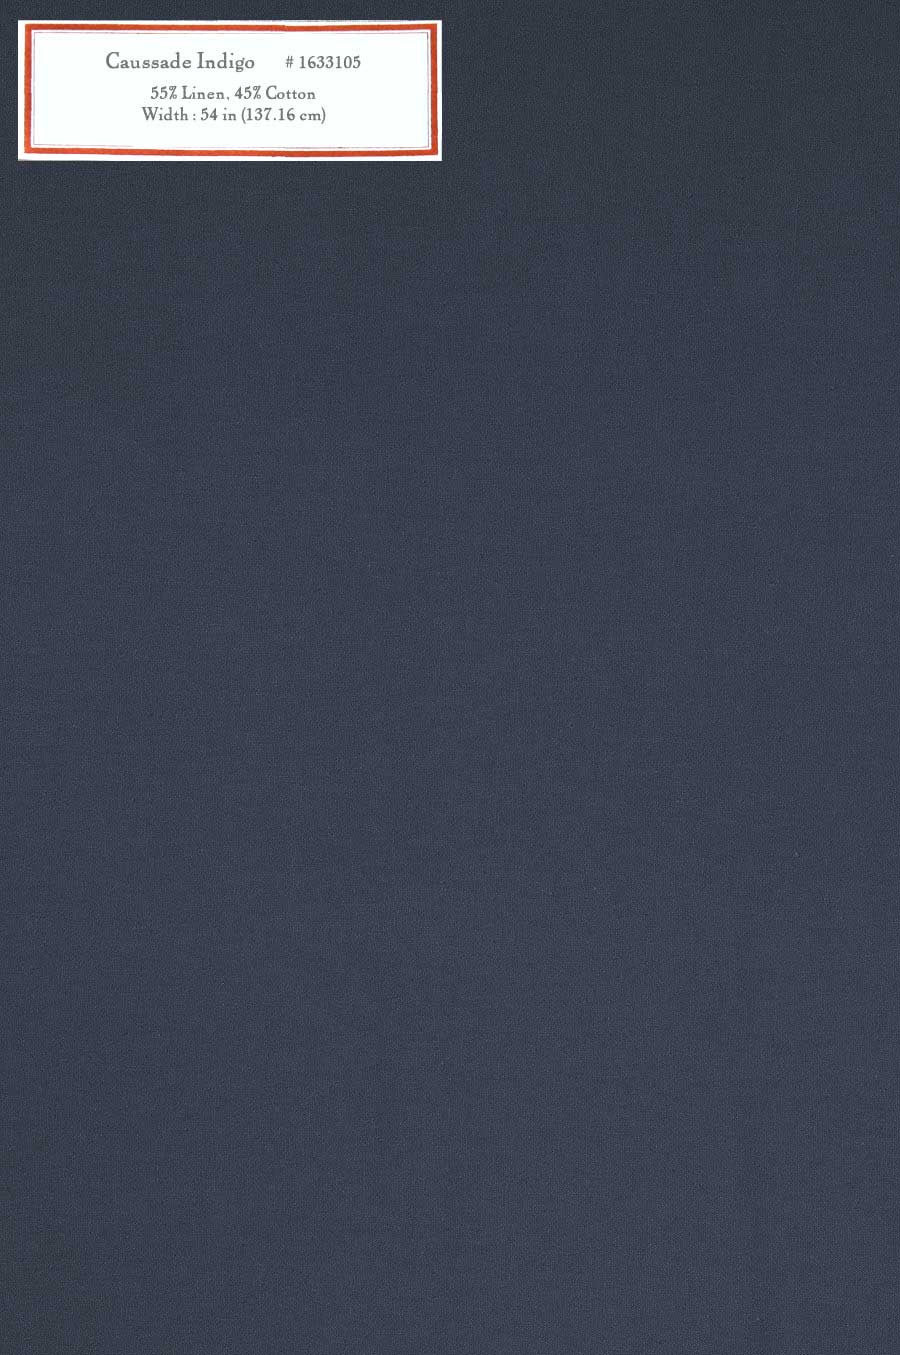 Home Decorative Fabric - Caussade Indigo